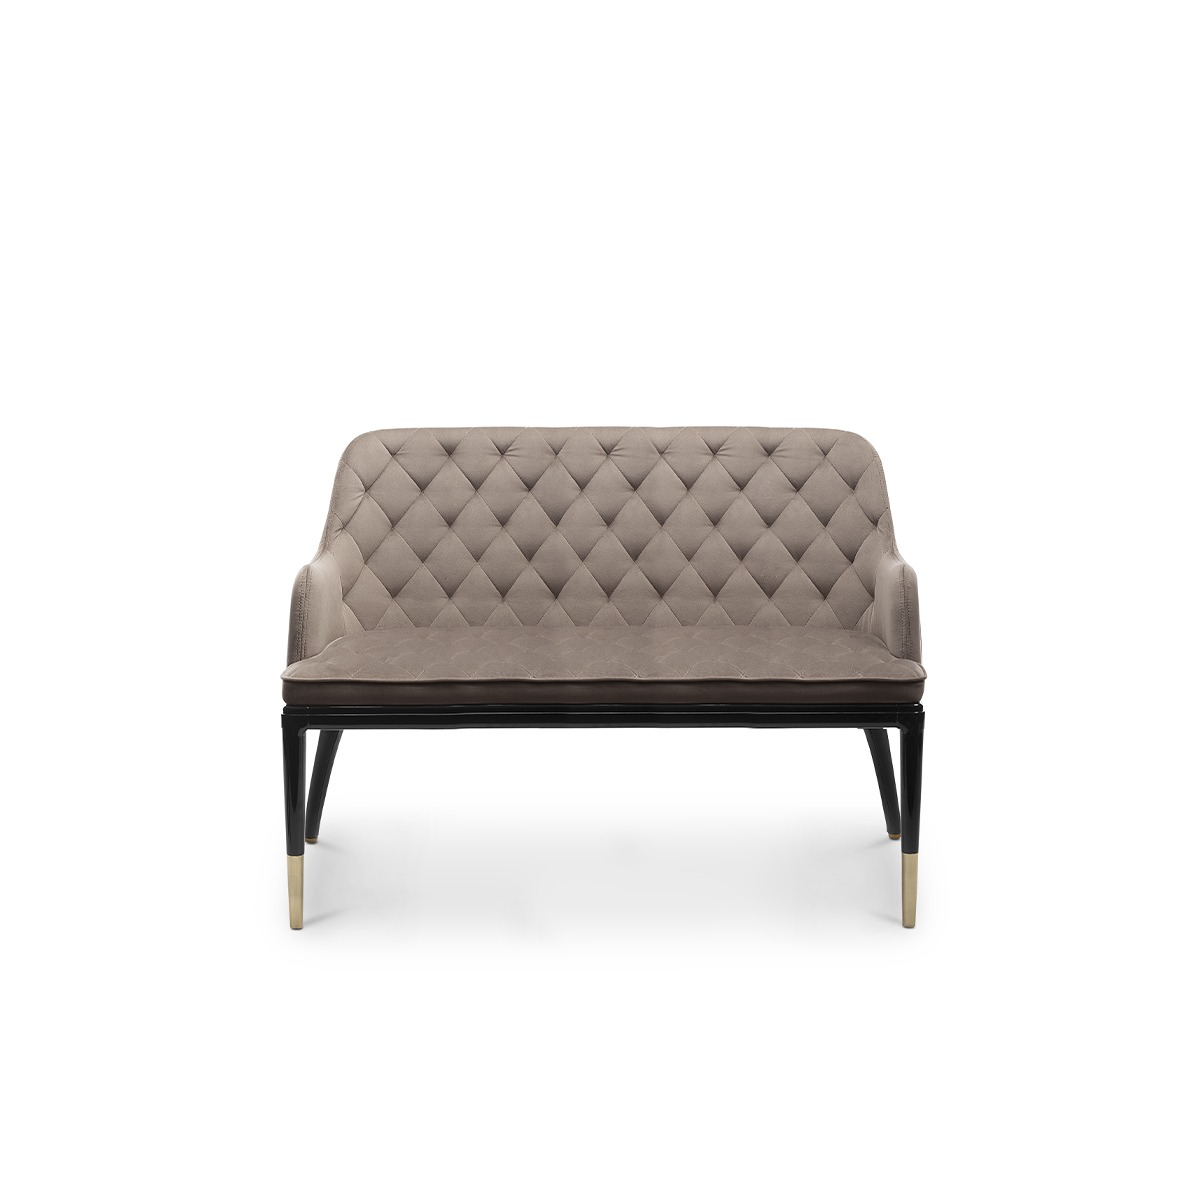 Charla Two Seat Sofa By Luxxu Covet House Curated Design